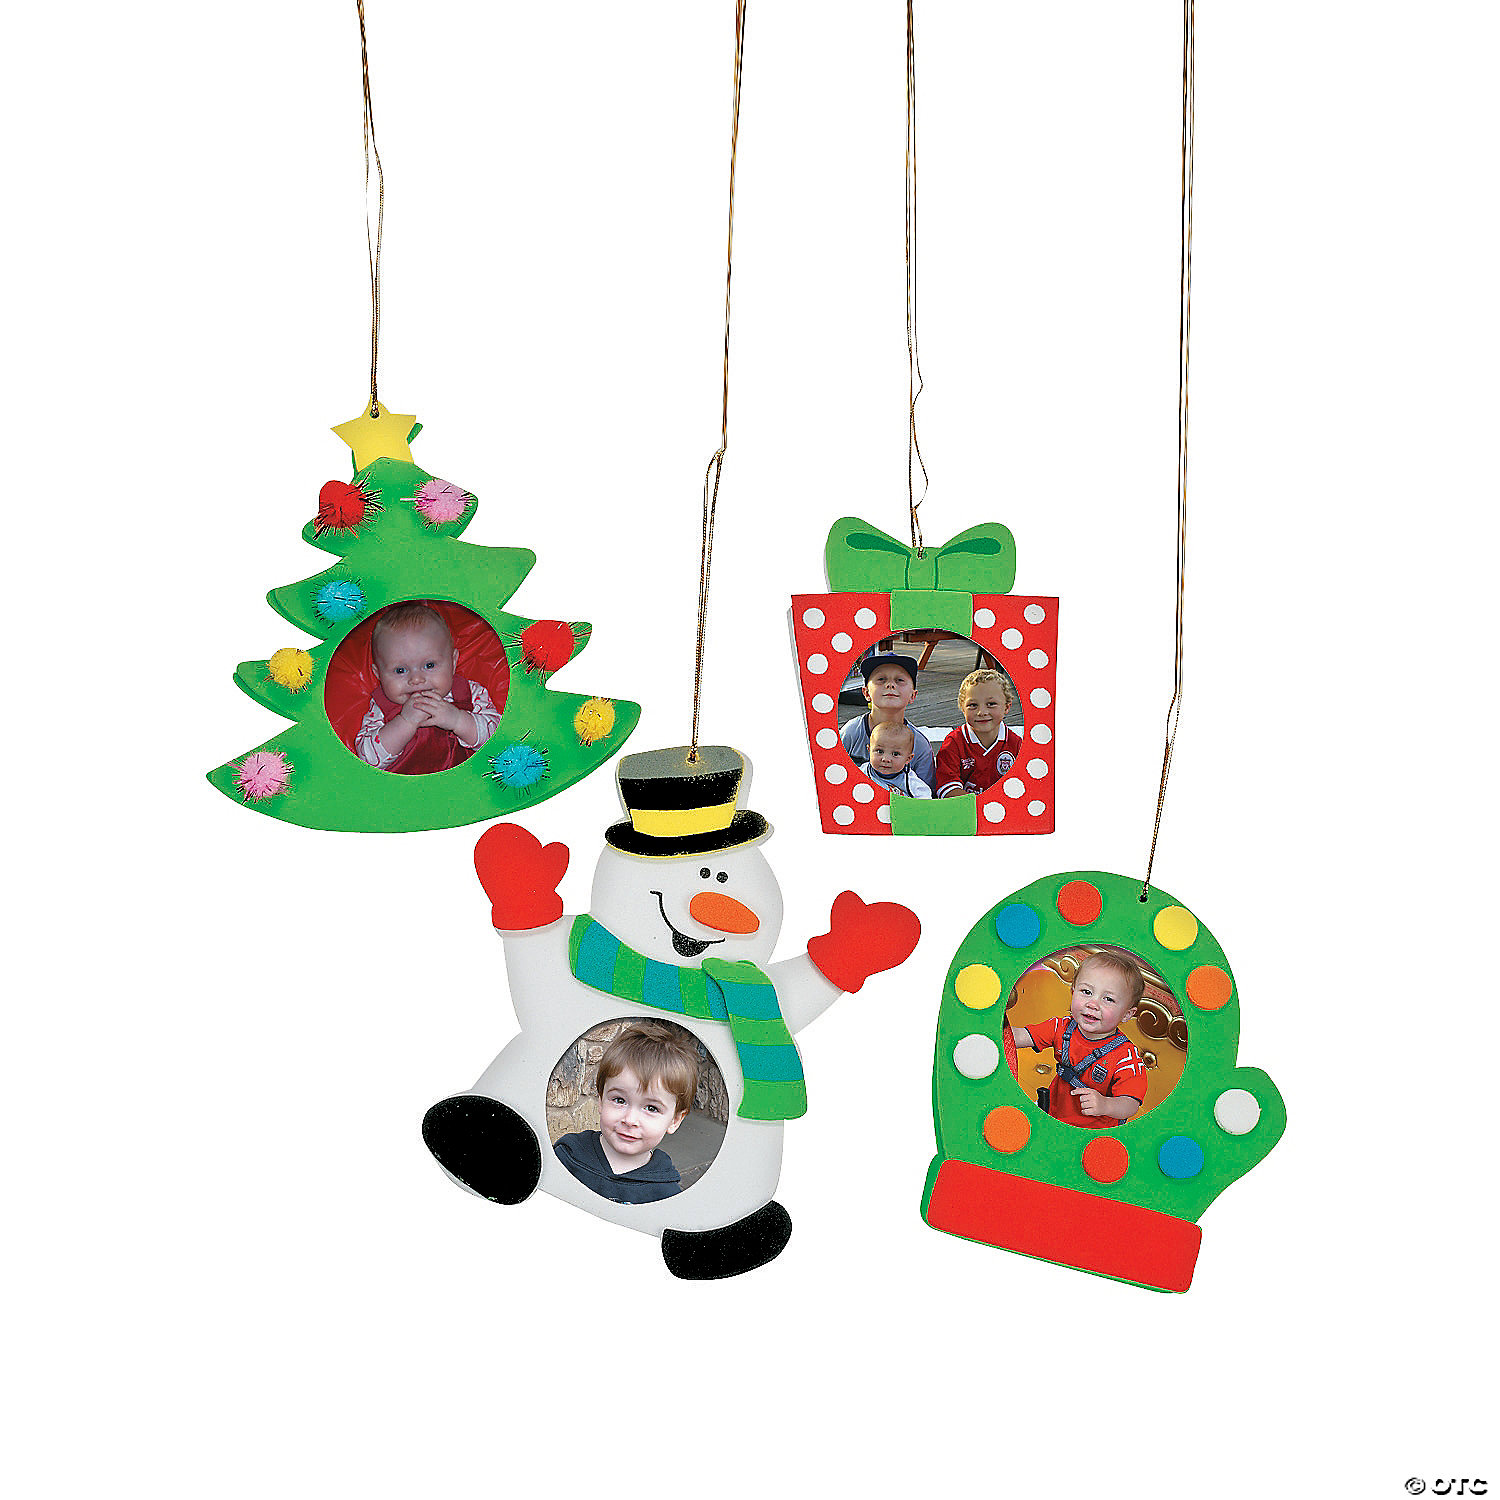 Christmas ornament craft kit - Holiday Picture Frame Ornament Craft Kit